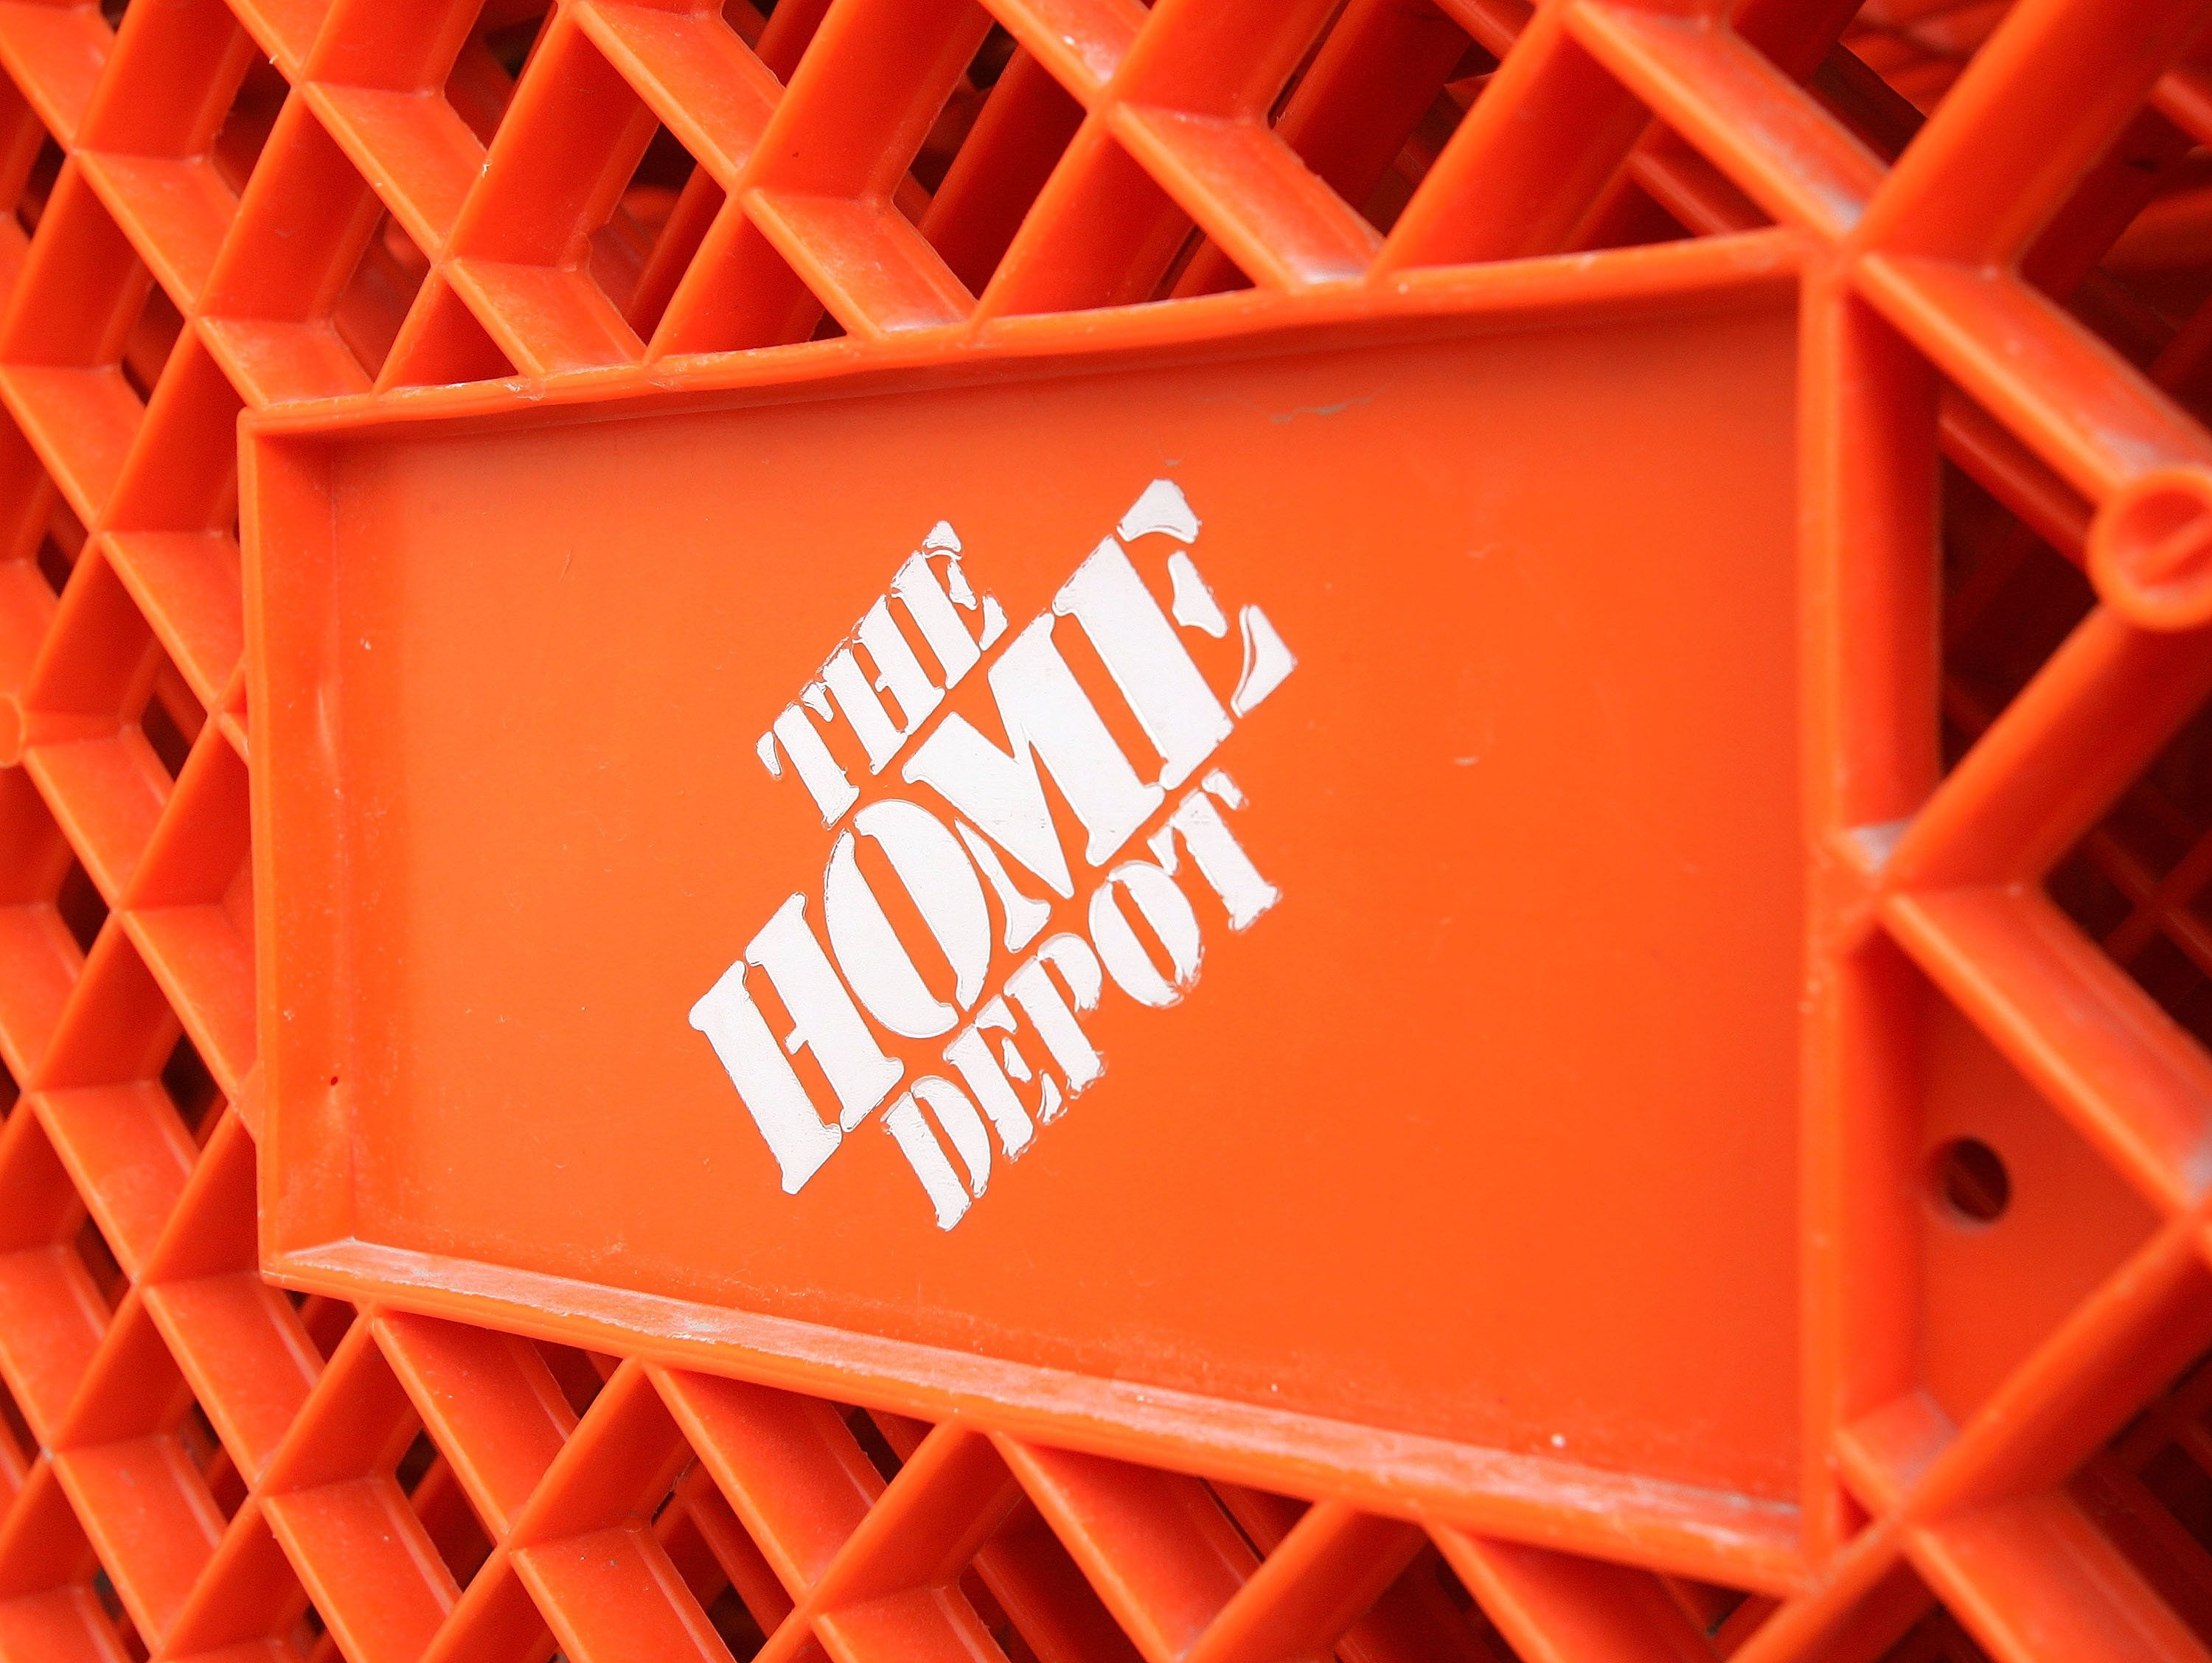 huffingtonpost.com - Michelle Lou - Home Depot Backtracks After Firing Employee Who Says He Stood Up To Racist Customer